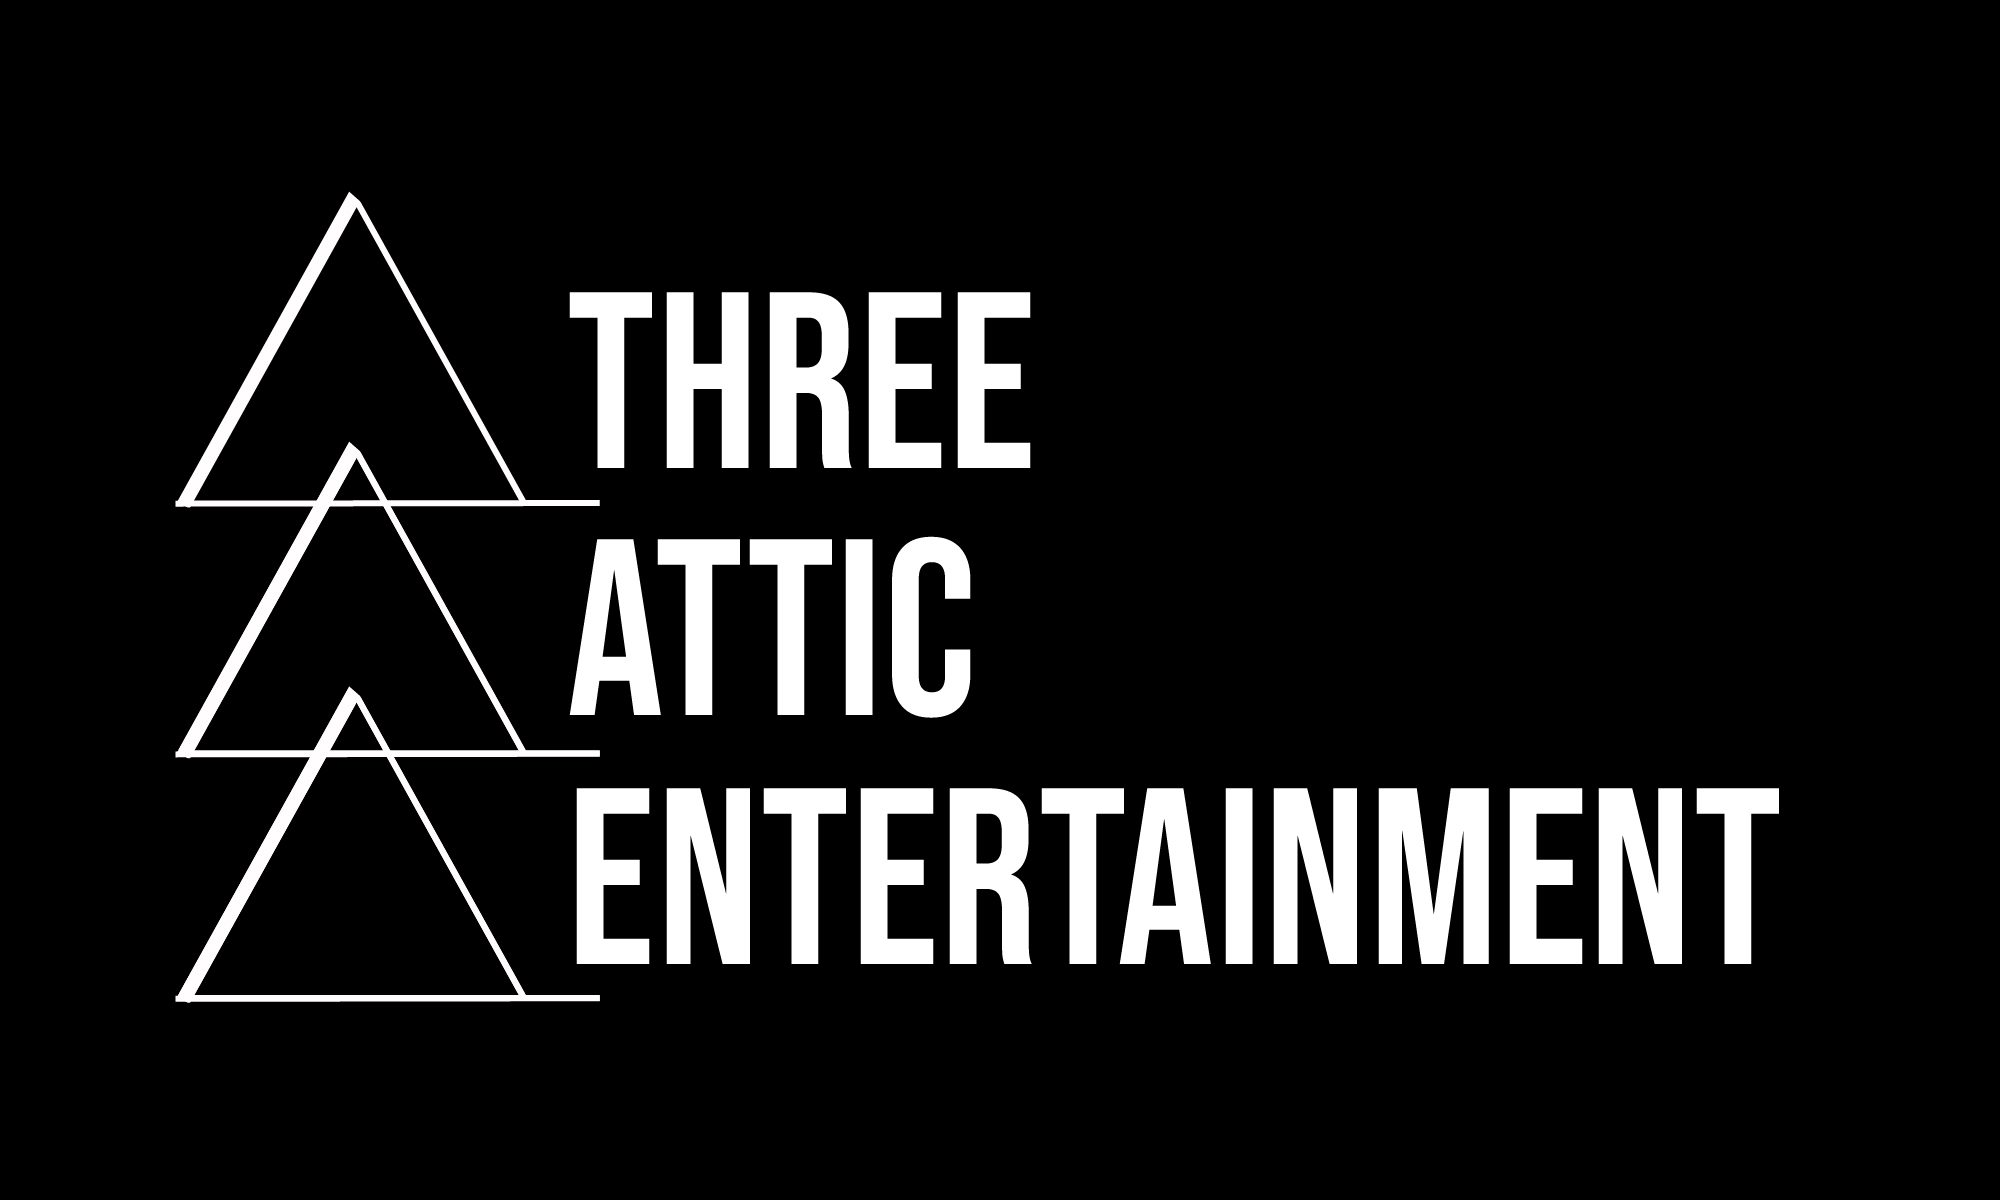 Three Attic Entertainment